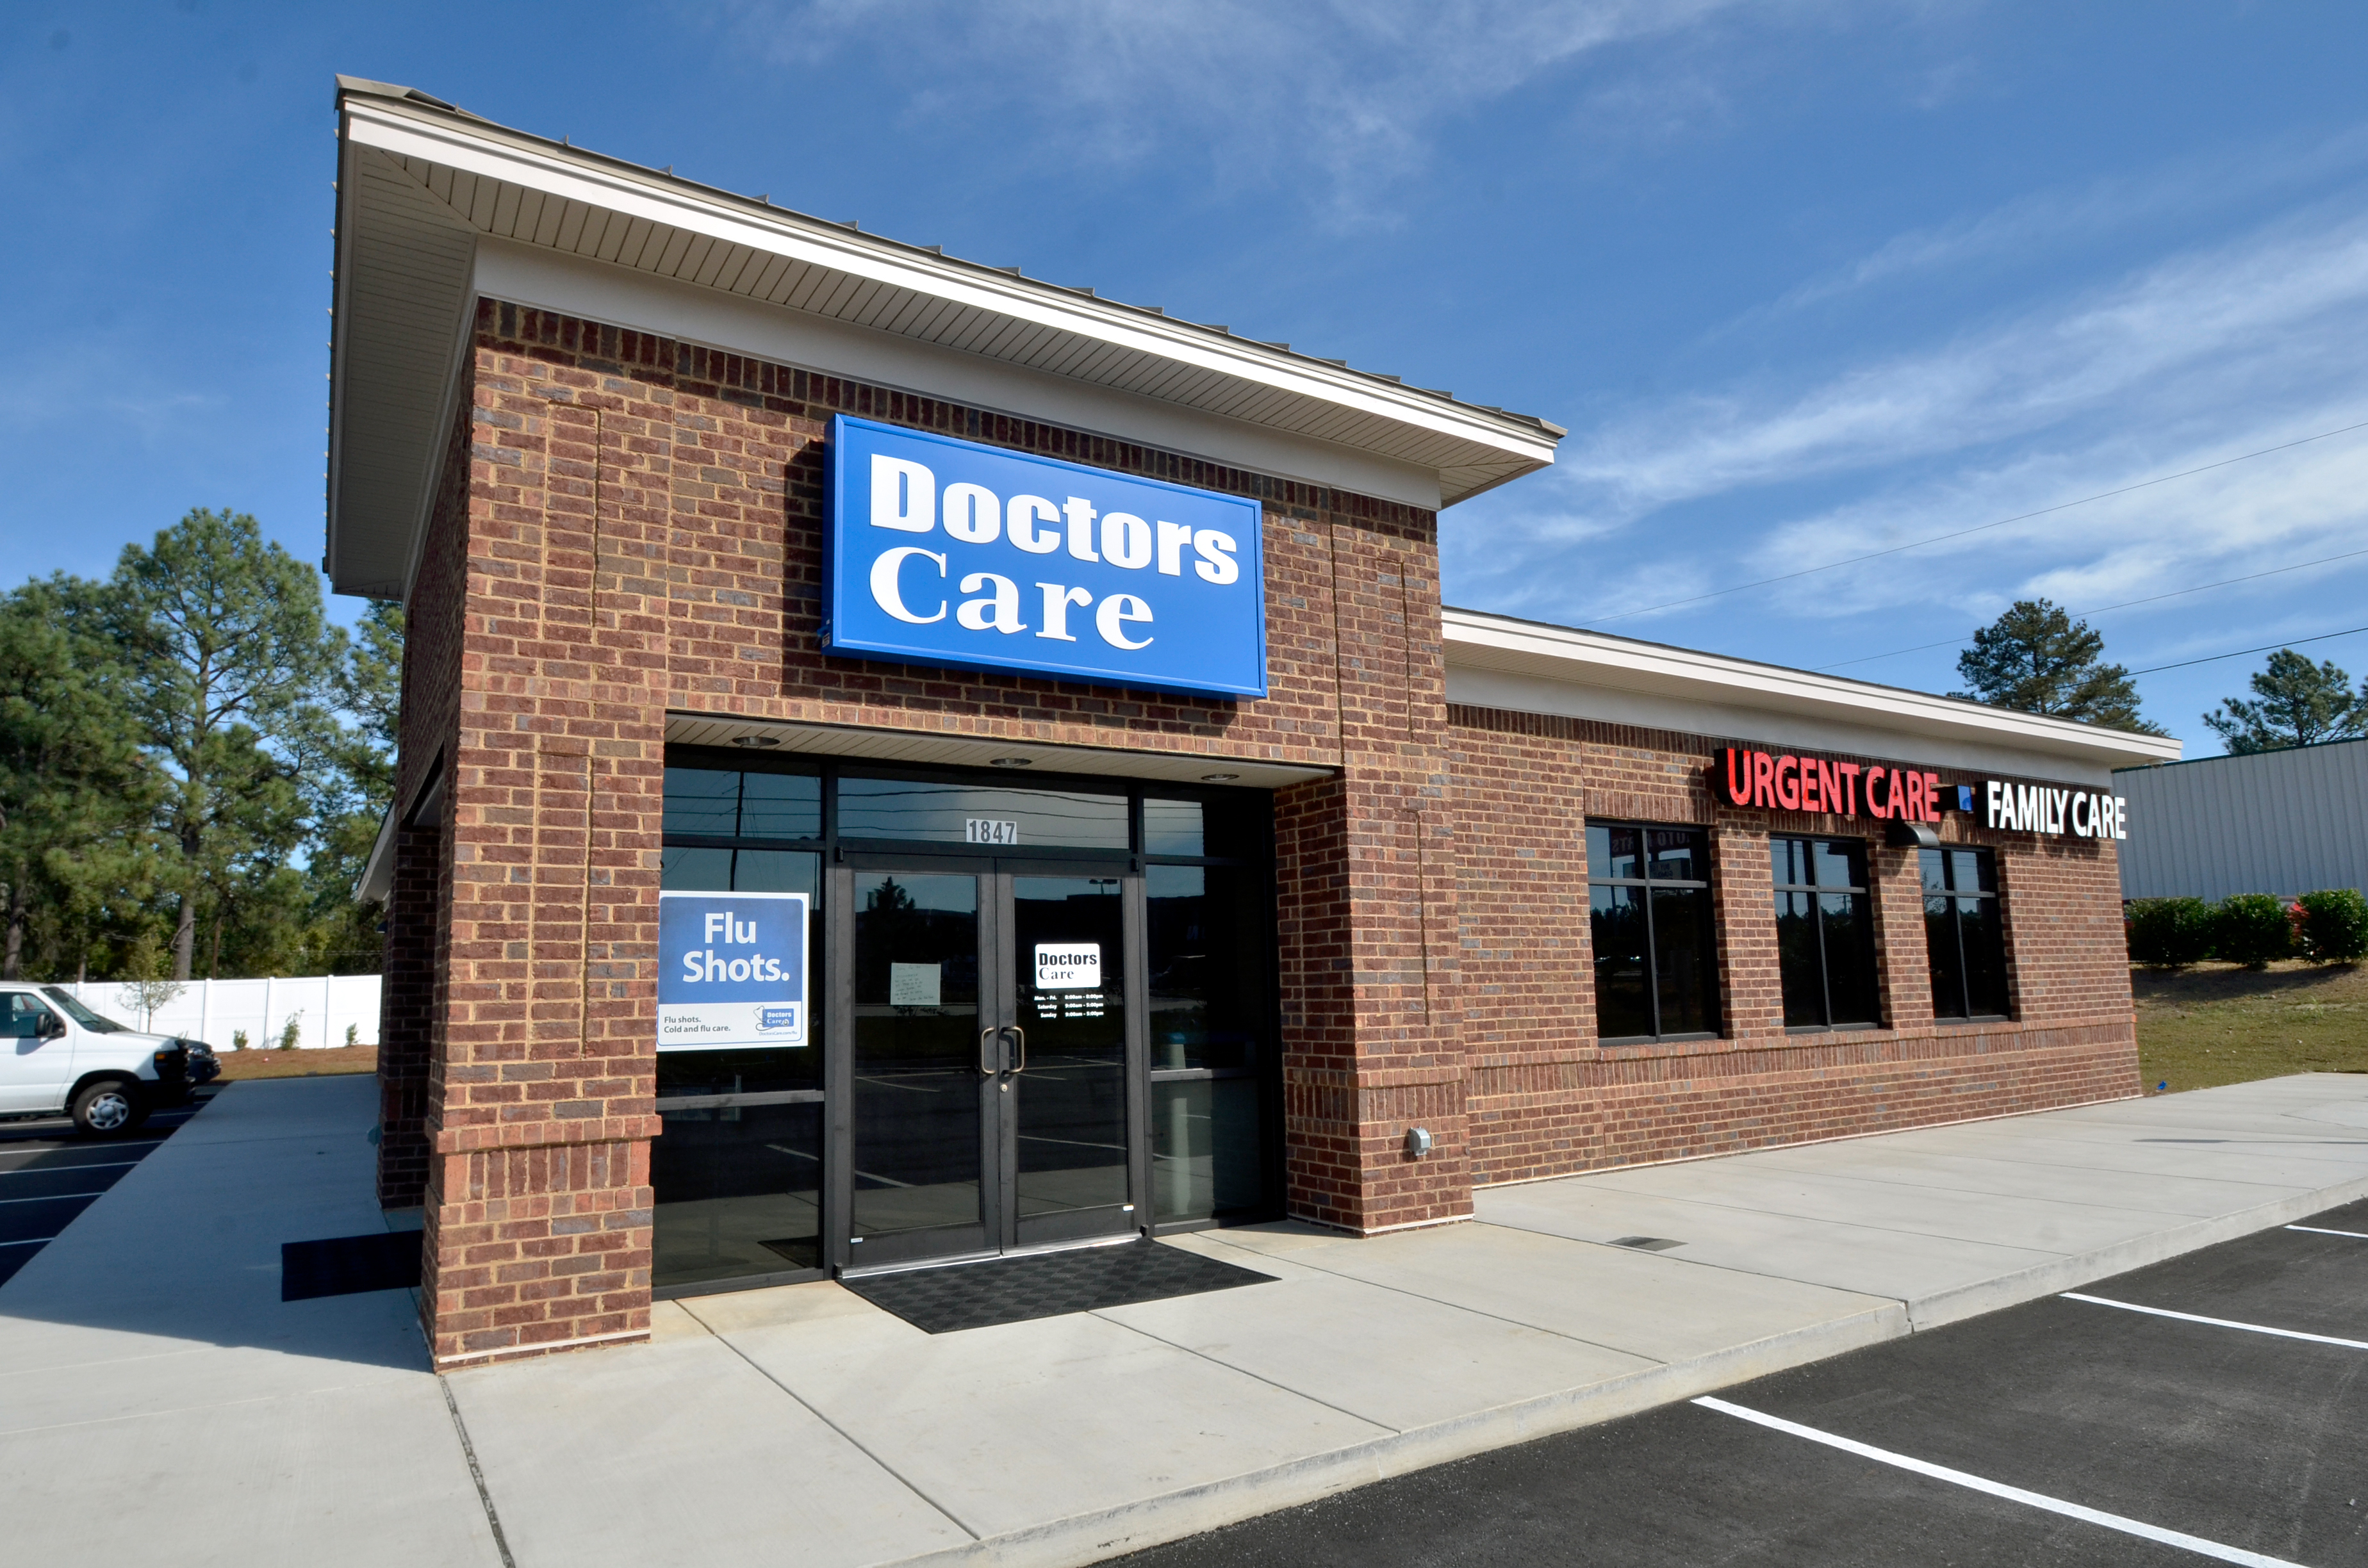 Doctor's Care